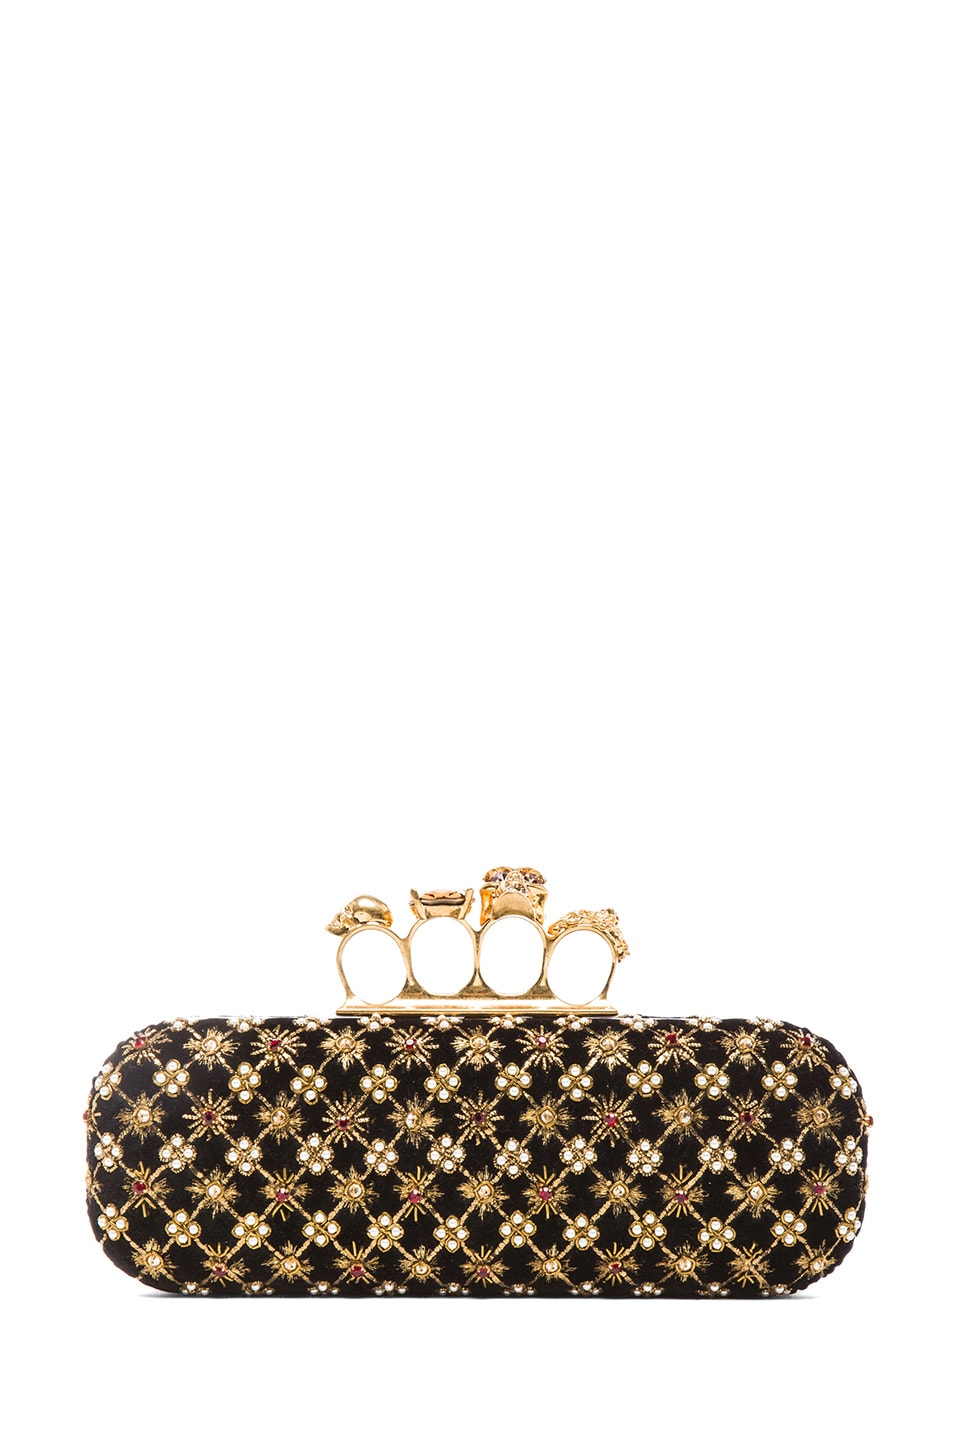 Image 1 of Alexander McQueen Embellished Knuckle Box Clutch in Multi